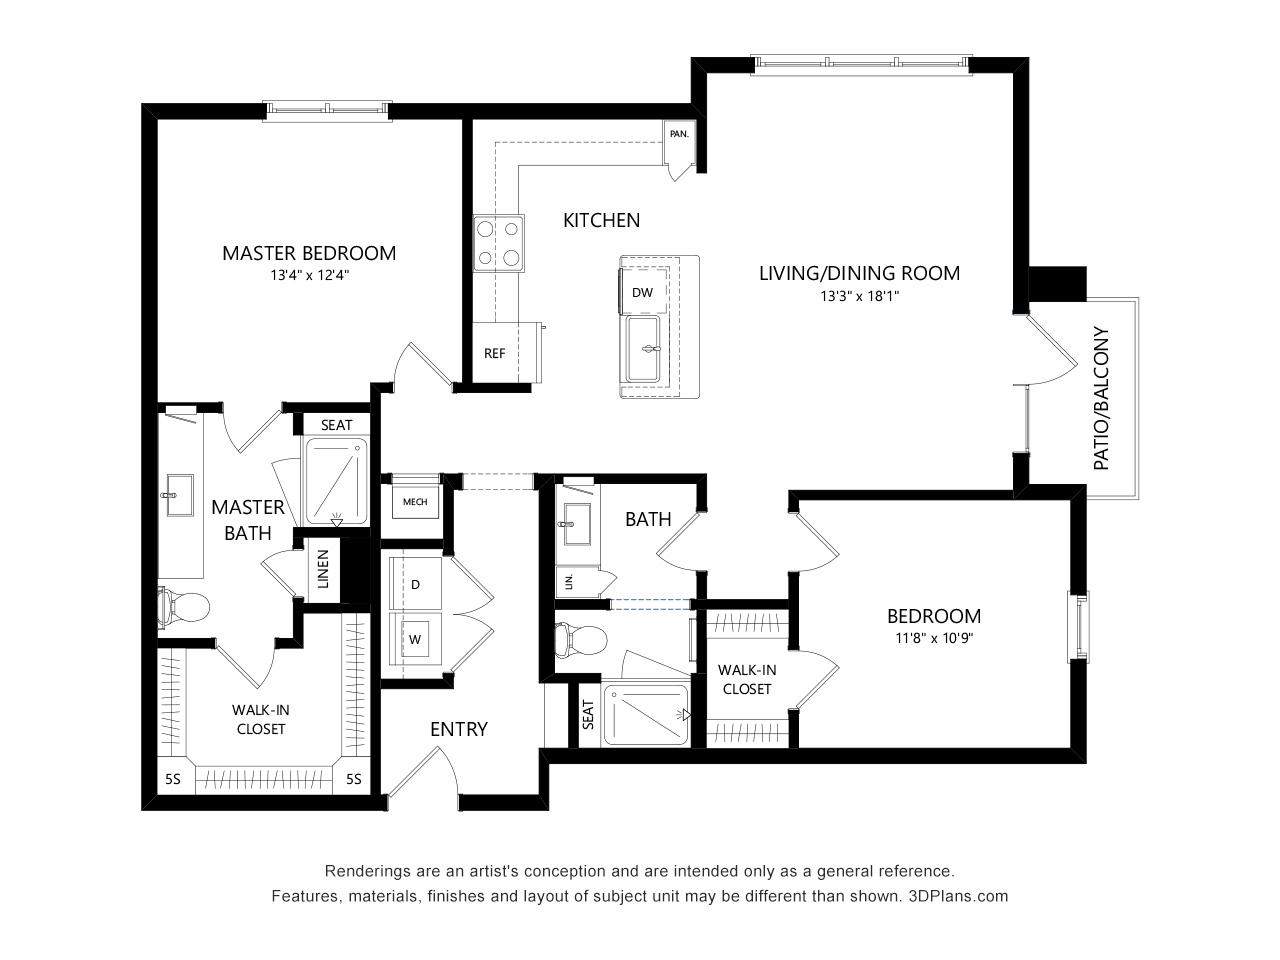 7 Black And White Floor Plans 3dplans